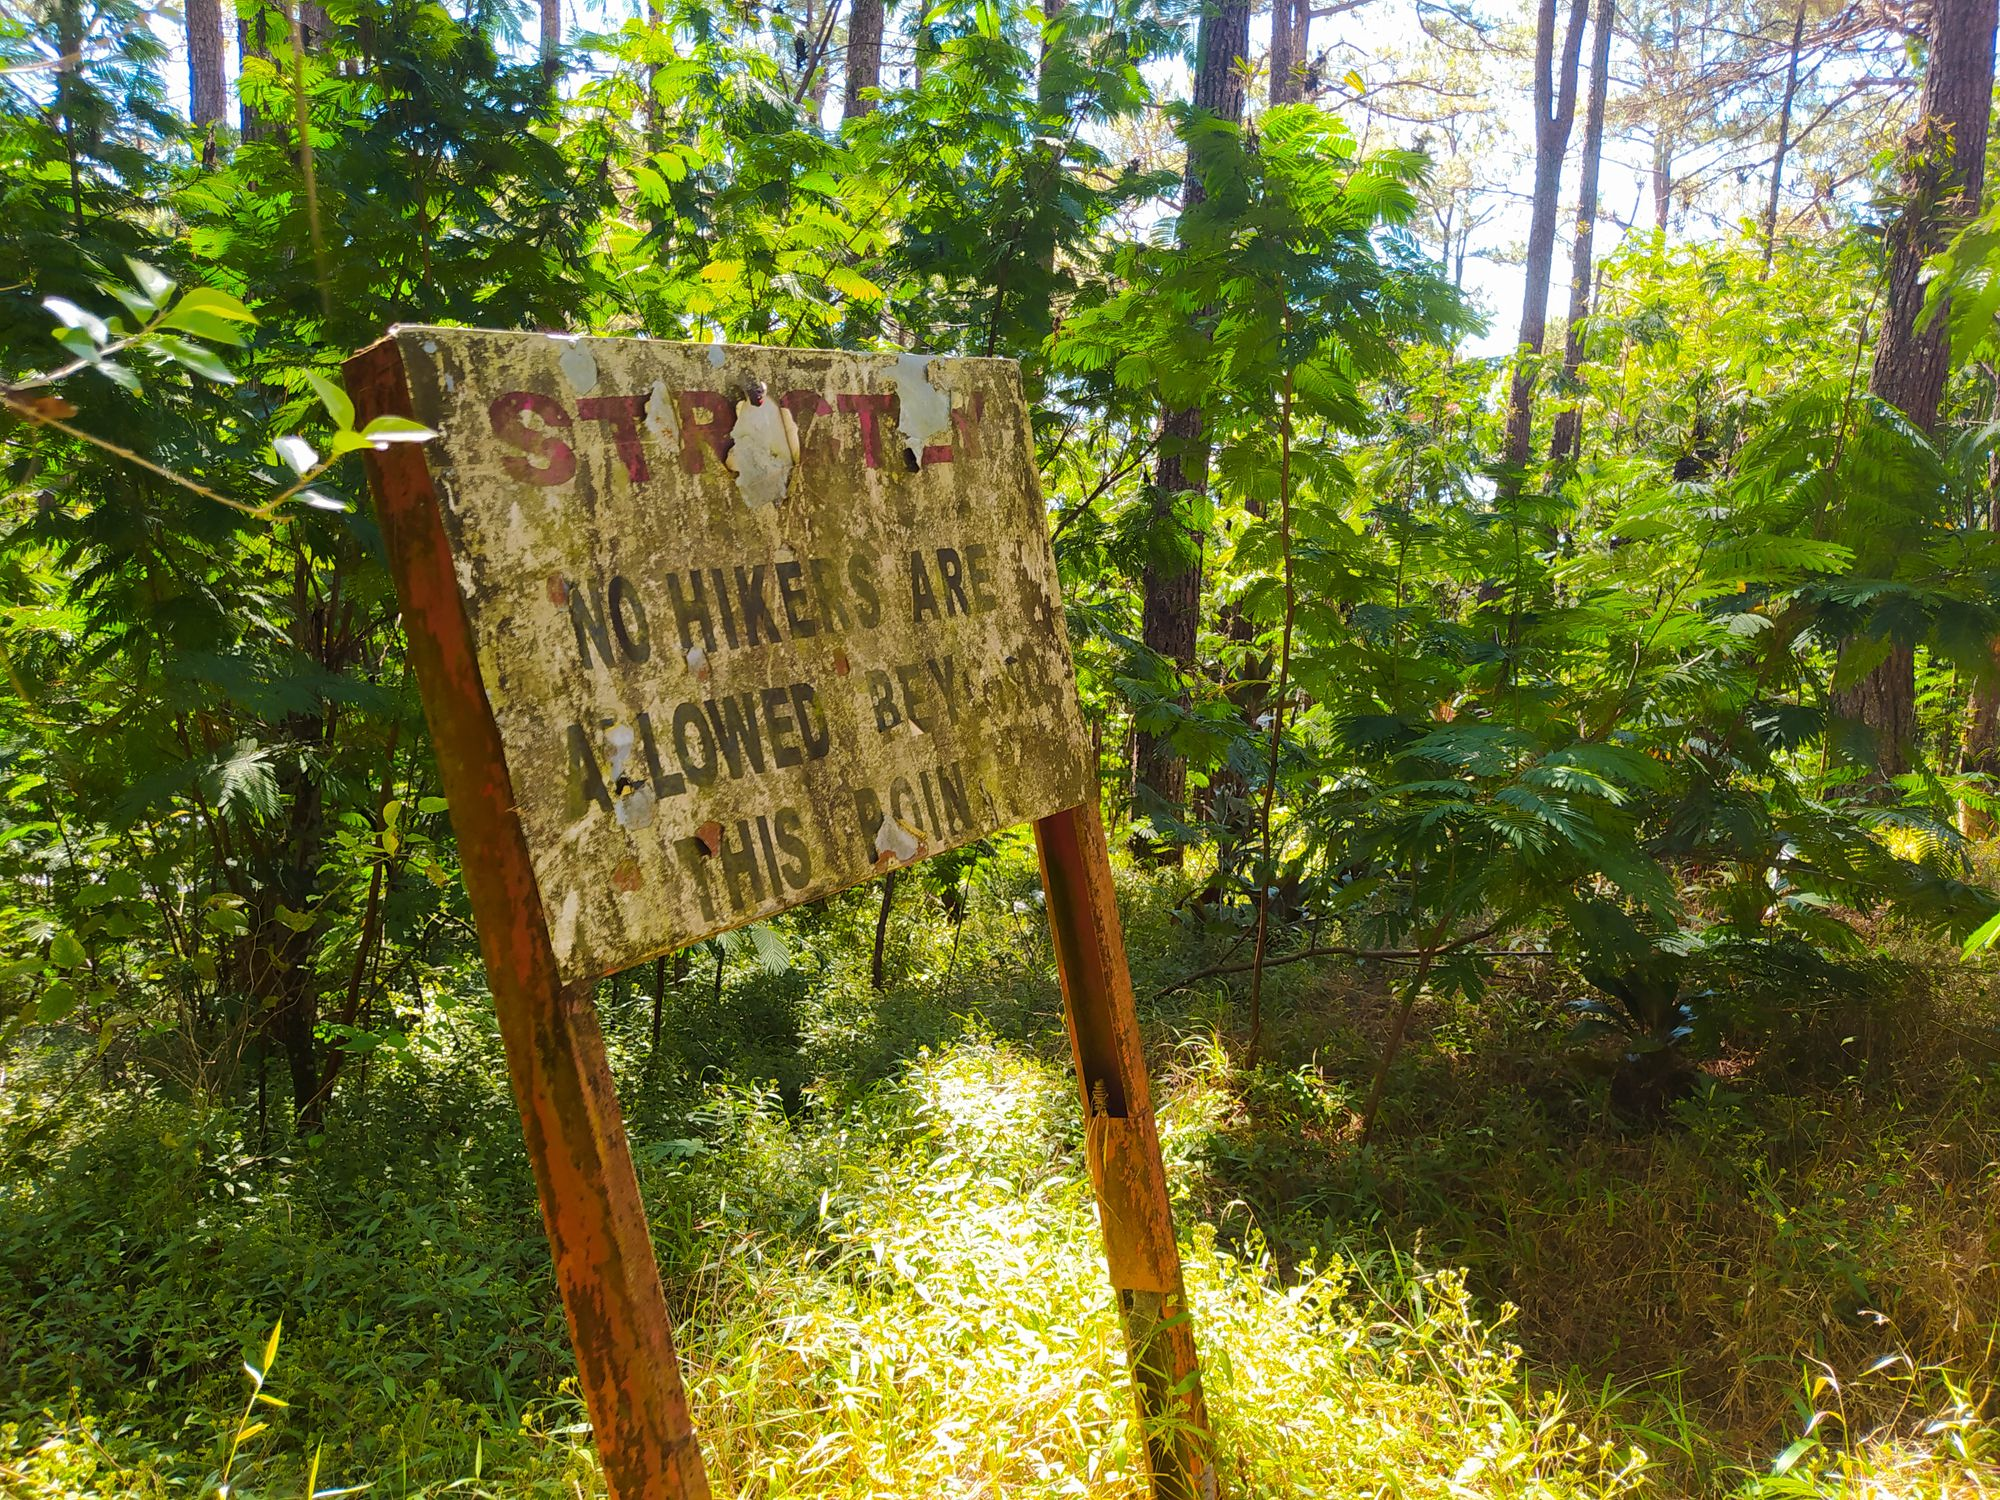 Old, dirty, and worn-out sign in the middle of the woods